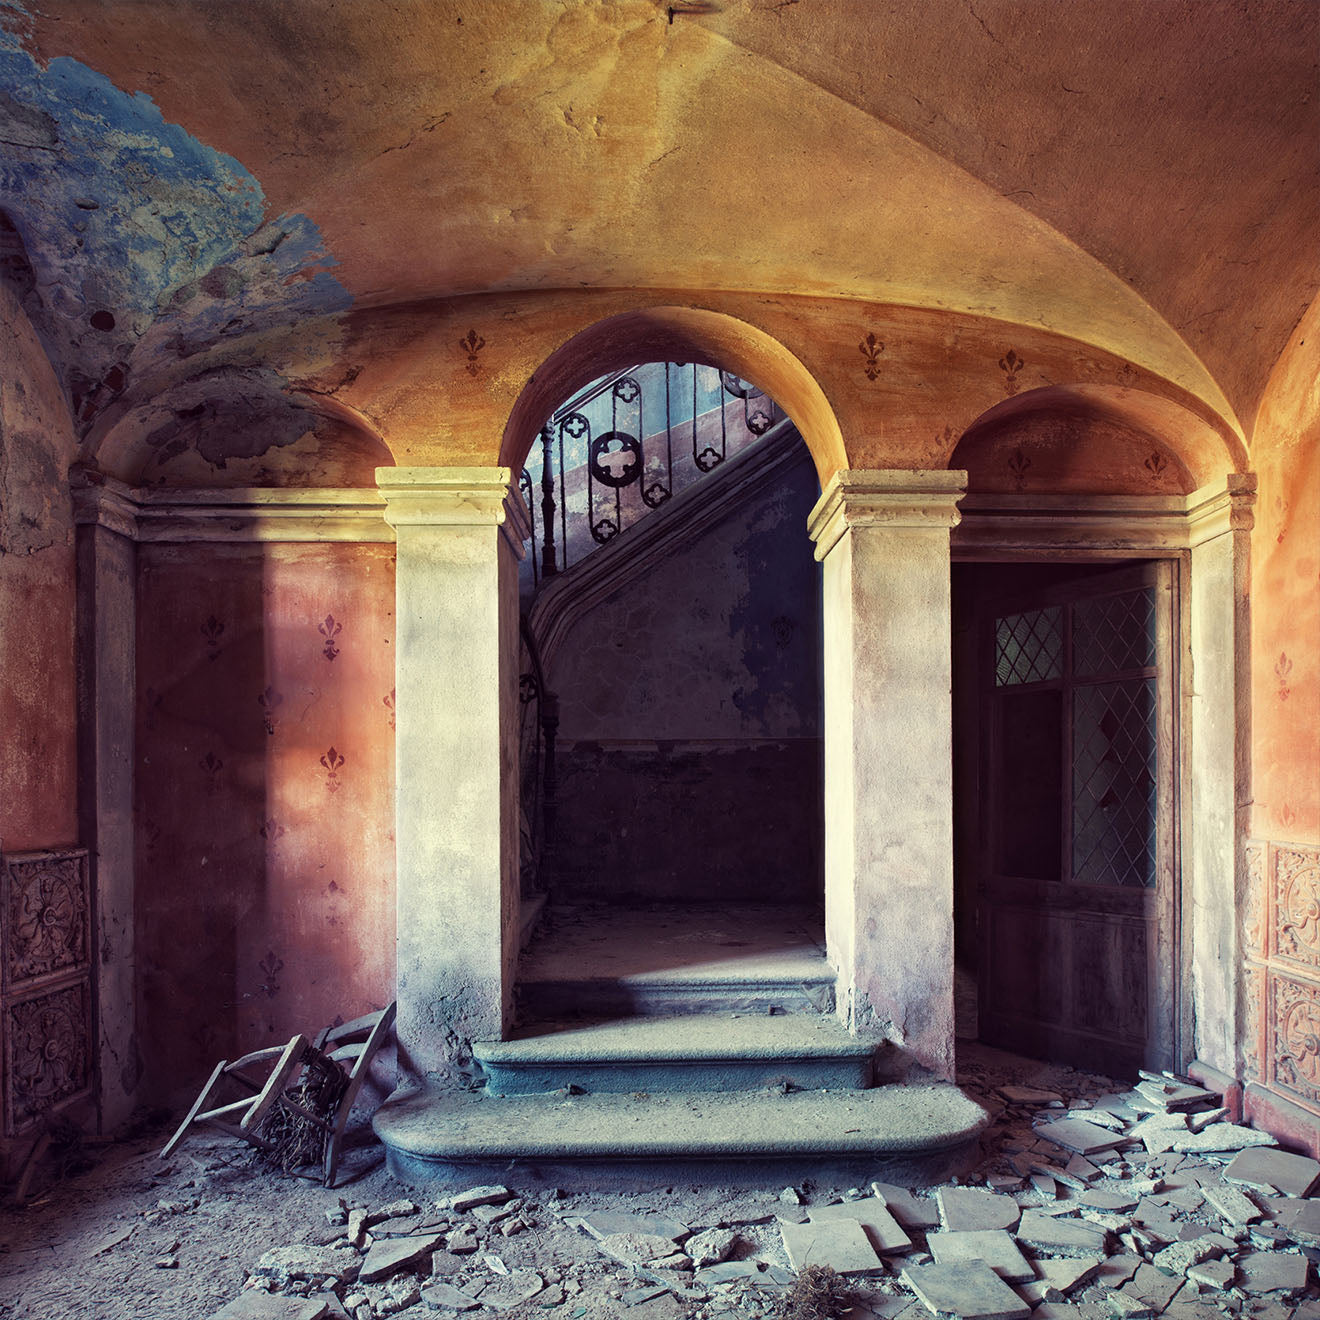 Abandoned Chapel photograph from Gina Soden on Rise Art